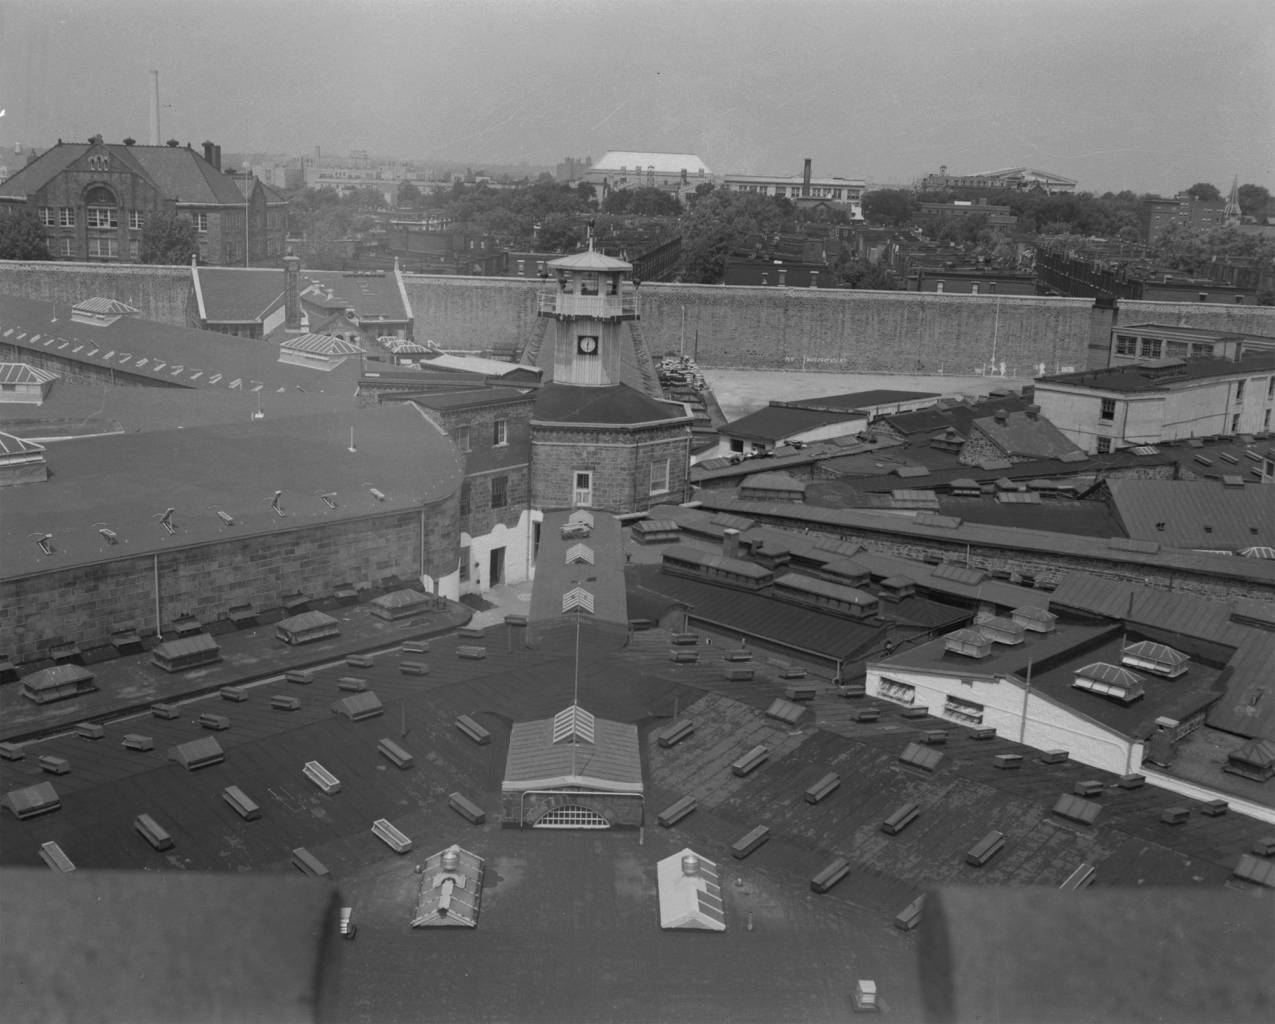 View from the Administration Building, c. 1960. Photo: collection of Eastern State Penitentiary, gift of Alan J. LeFebvre.